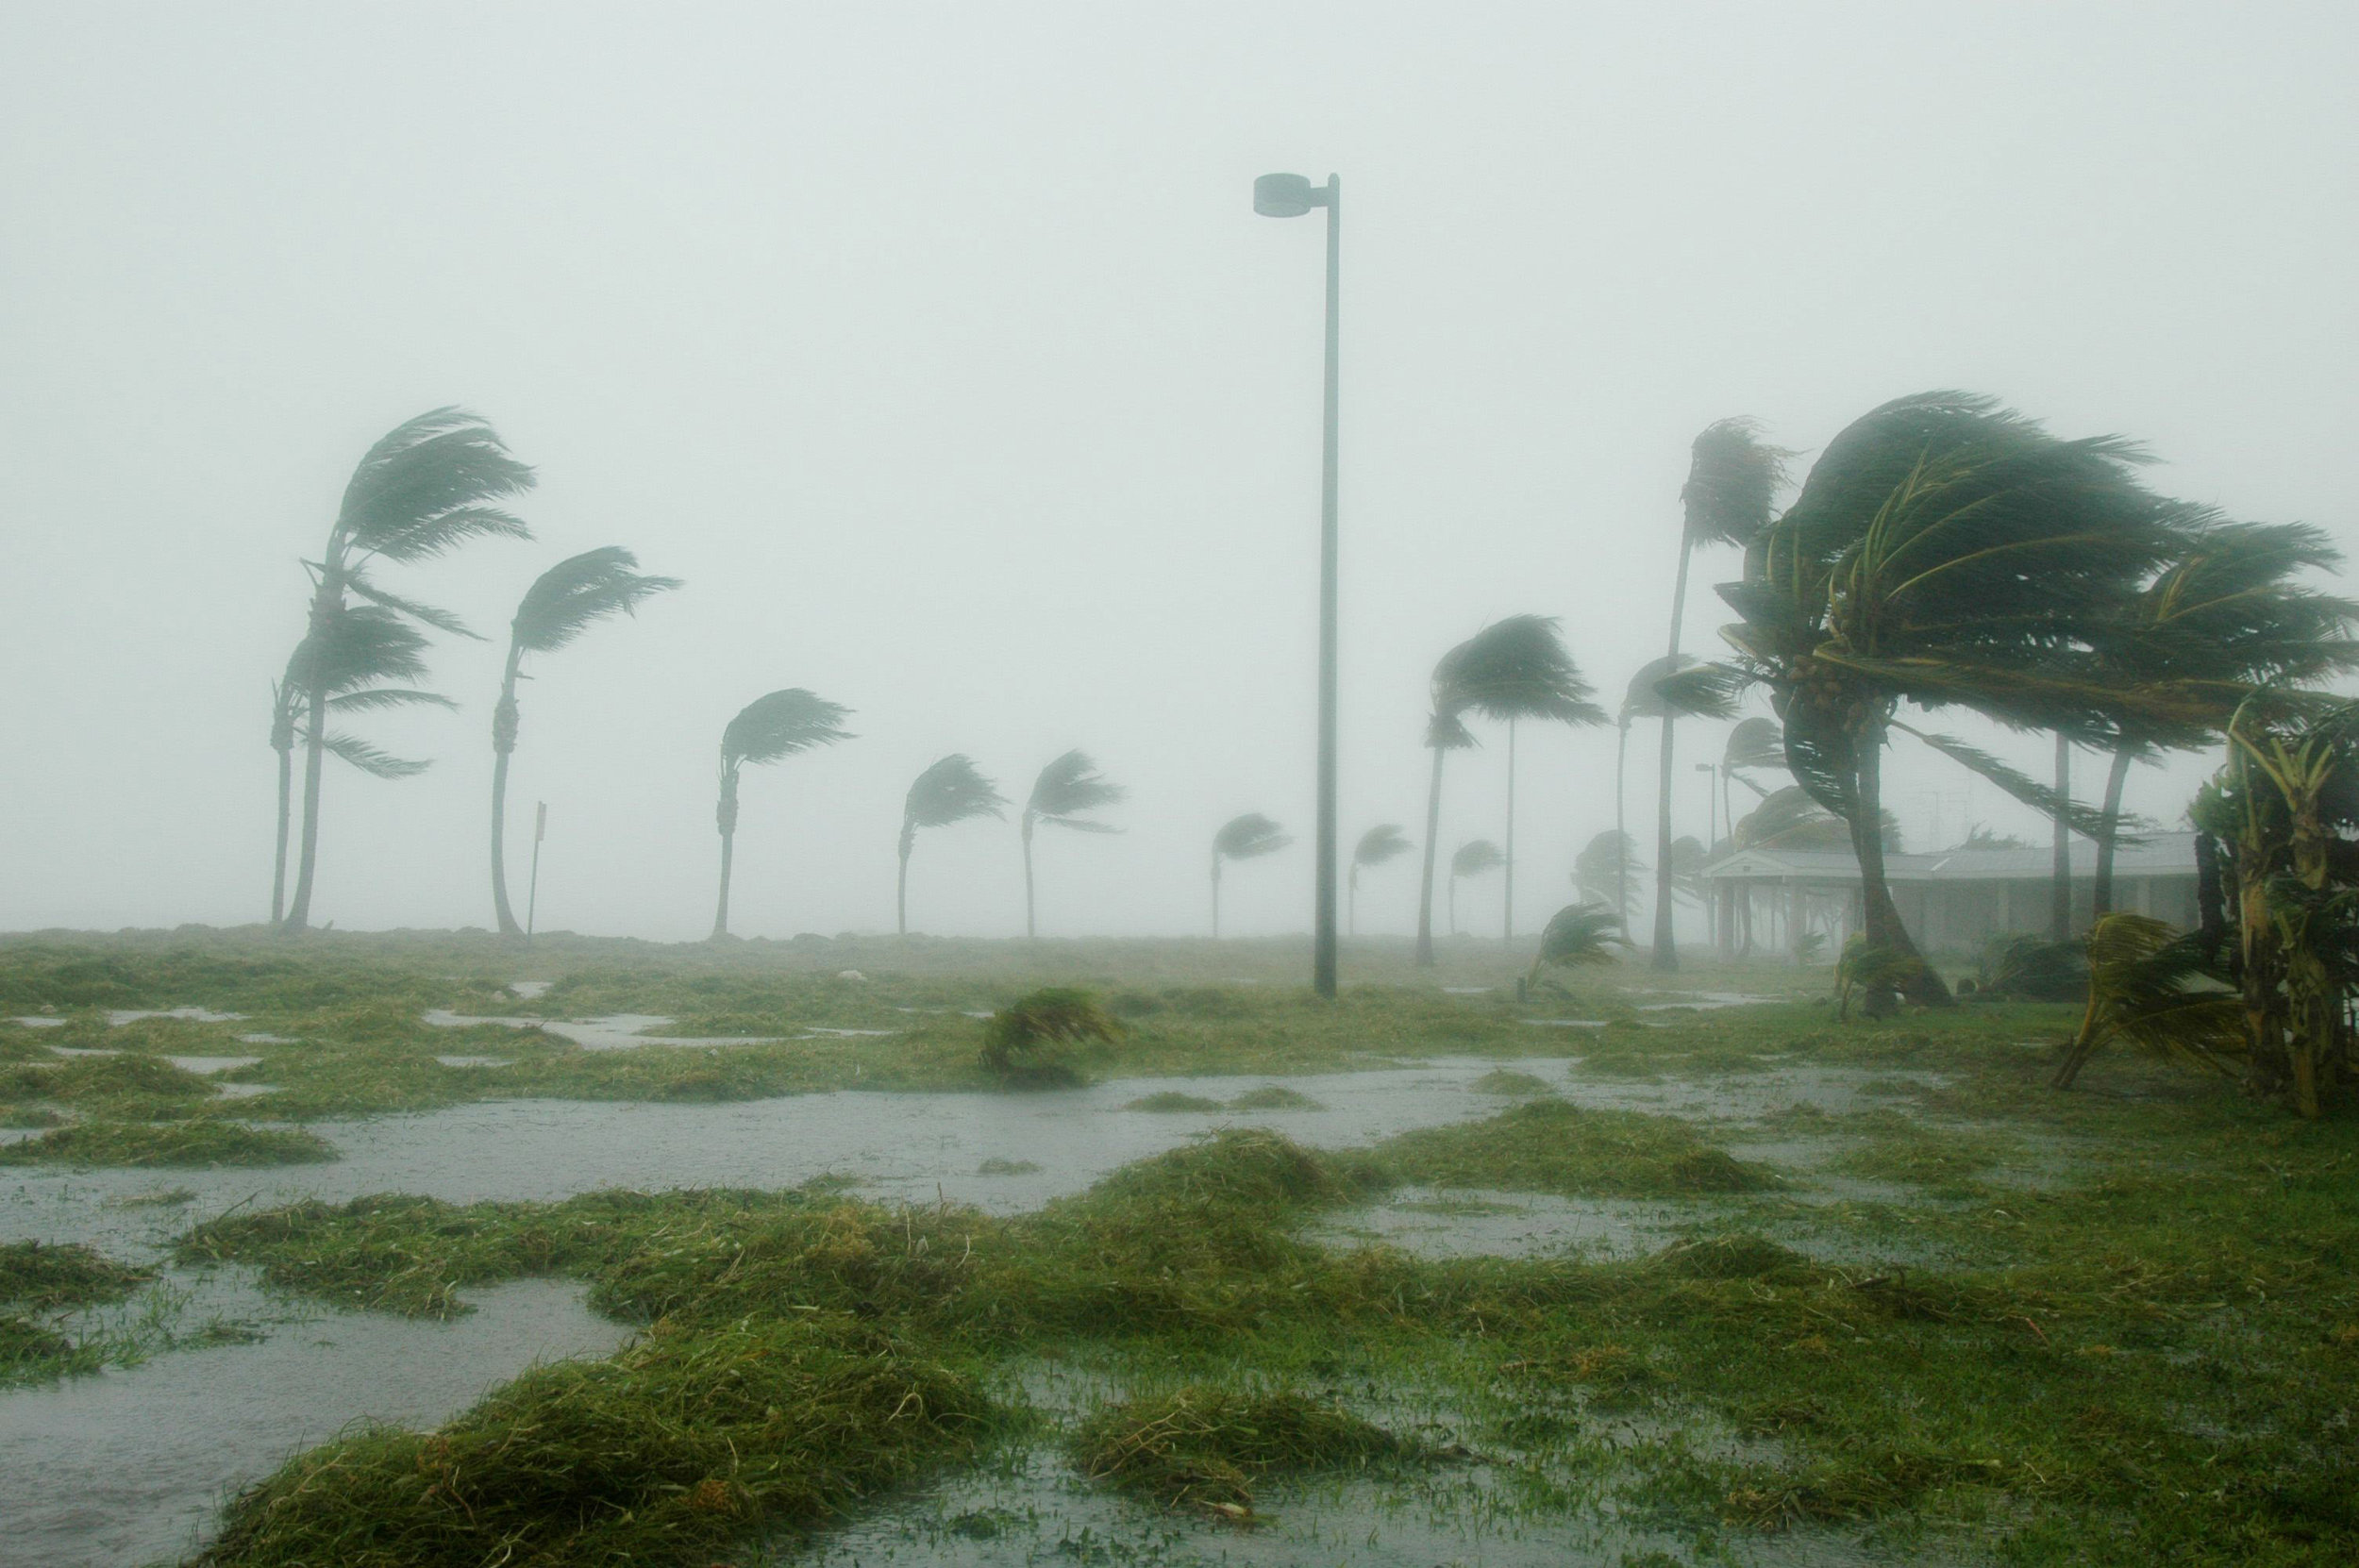 US_Navy_050709-N-0000B-004_Hurricane_Dennis_batters_palm_trees_and_floods_parts_of_Naval_Air_Station_(NAS)_Key_West's_Truman_Annex.jpg